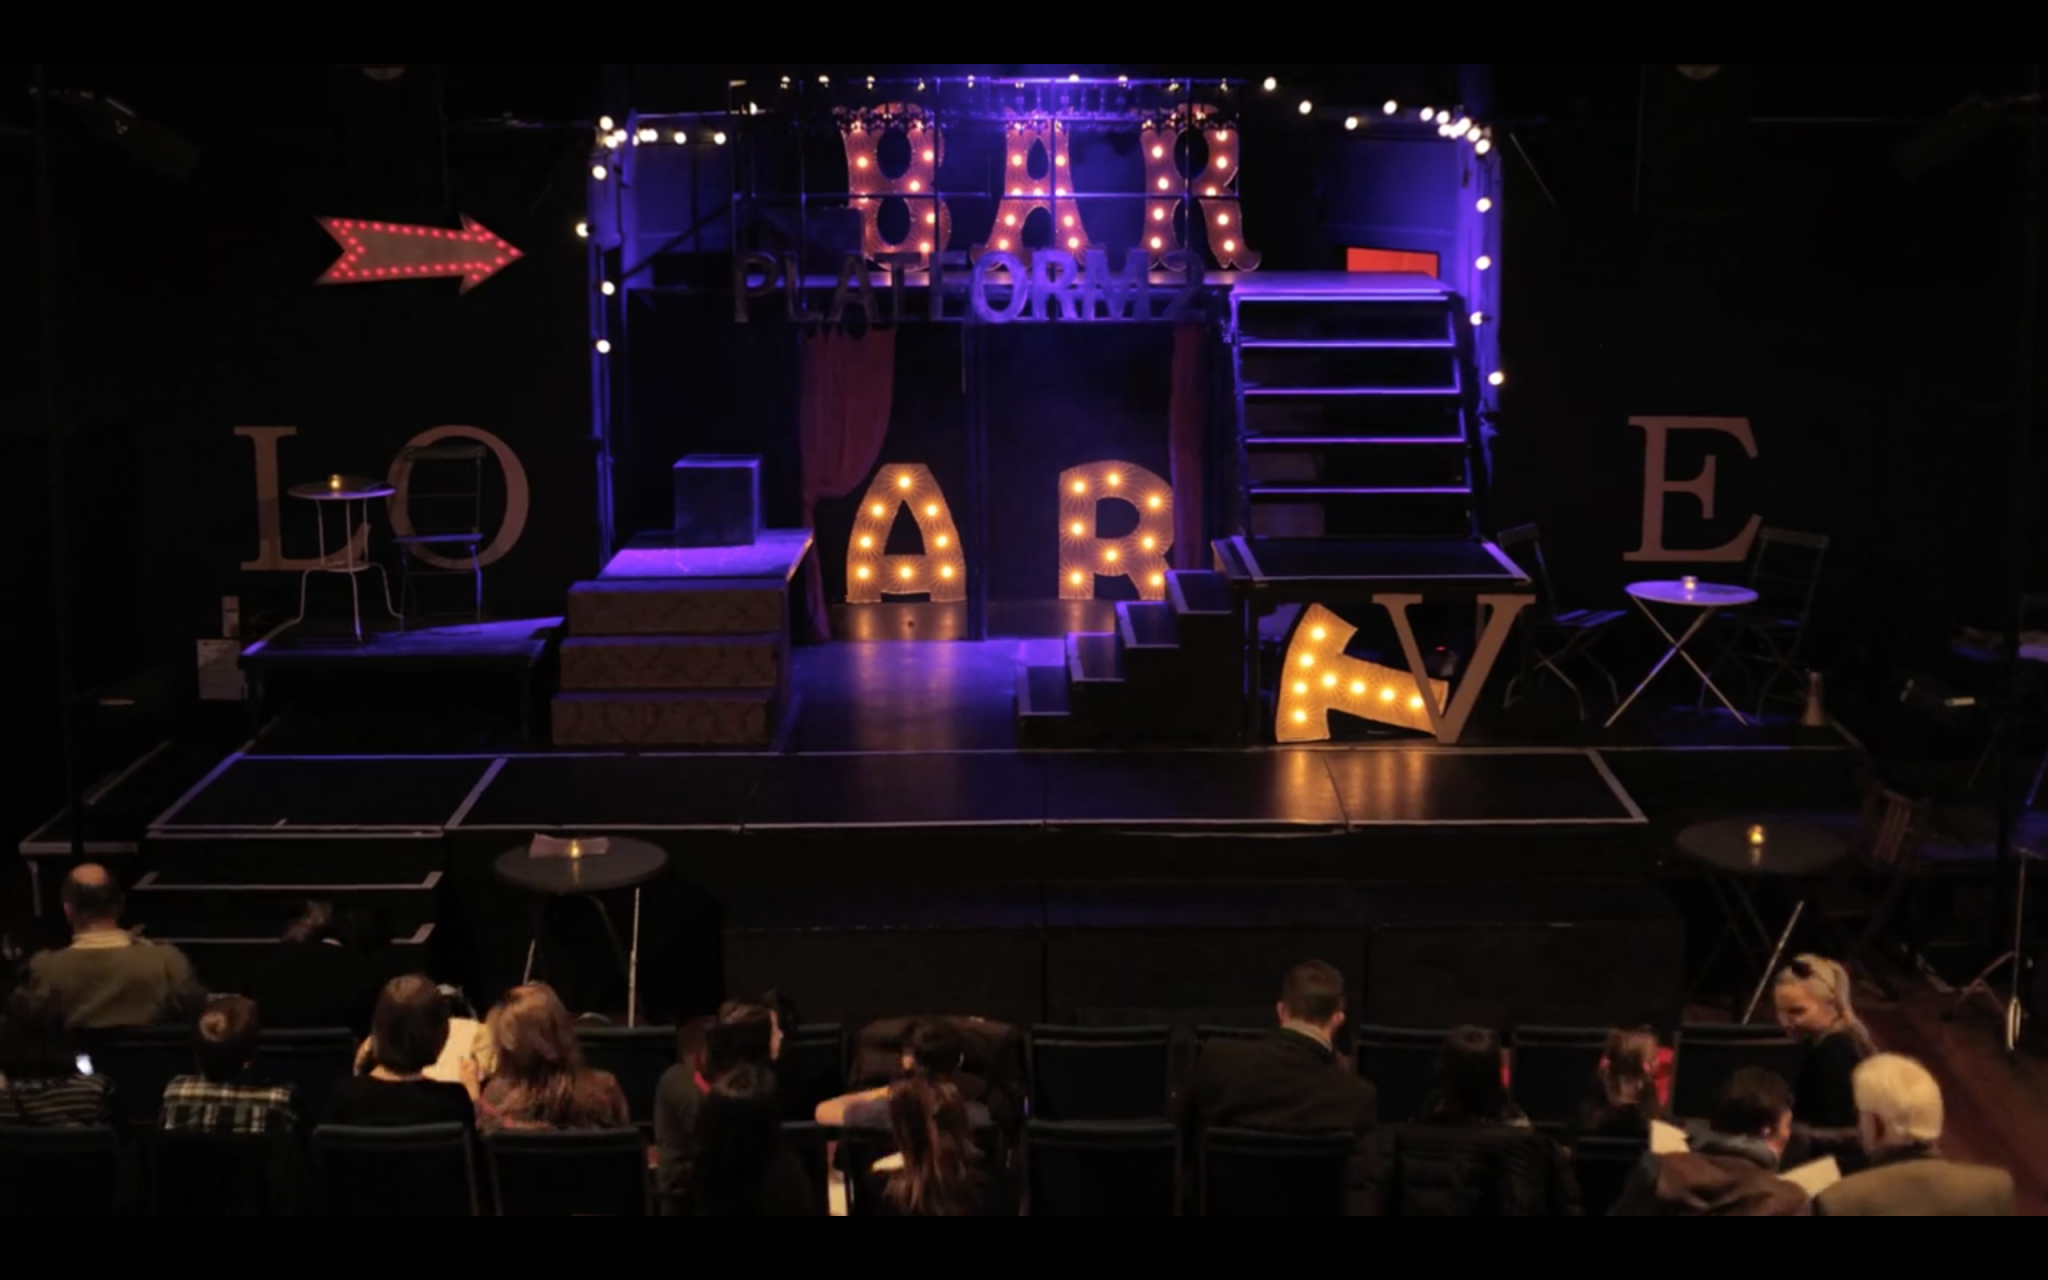 Image shows a stage set up with with stairs and lights. The lights read BAR in the centre, LOVE spread across either side of the stage. An arrow points to a raisaed platform, and other lights run around the edge of the platform. The audience is gathering